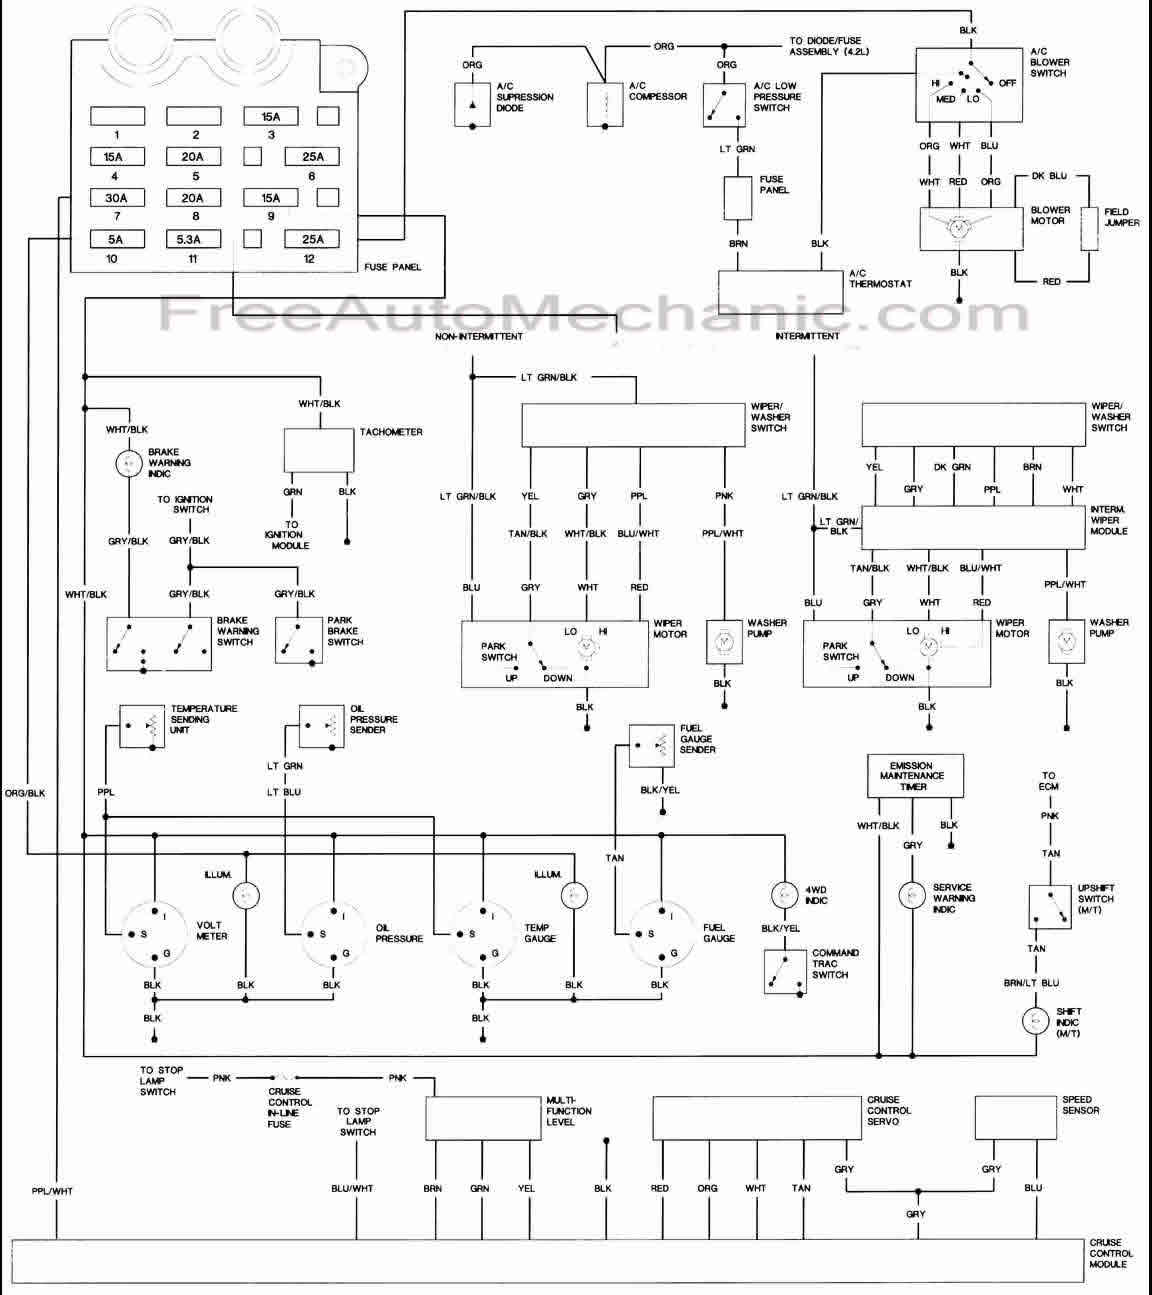 wiring diagram for jeep wrangler the wiring diagram 1995 jeep wrangler wiring diagram electrical wiring wiring diagram